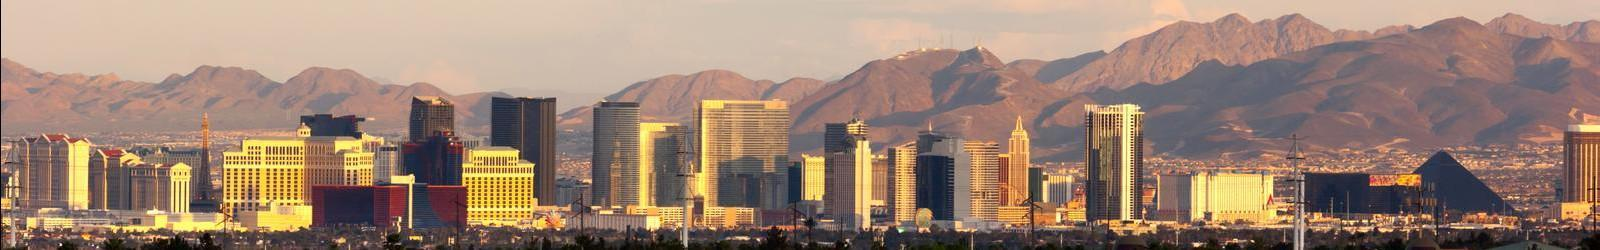 Loss or Grief therapists in Las Vegas, Nevada